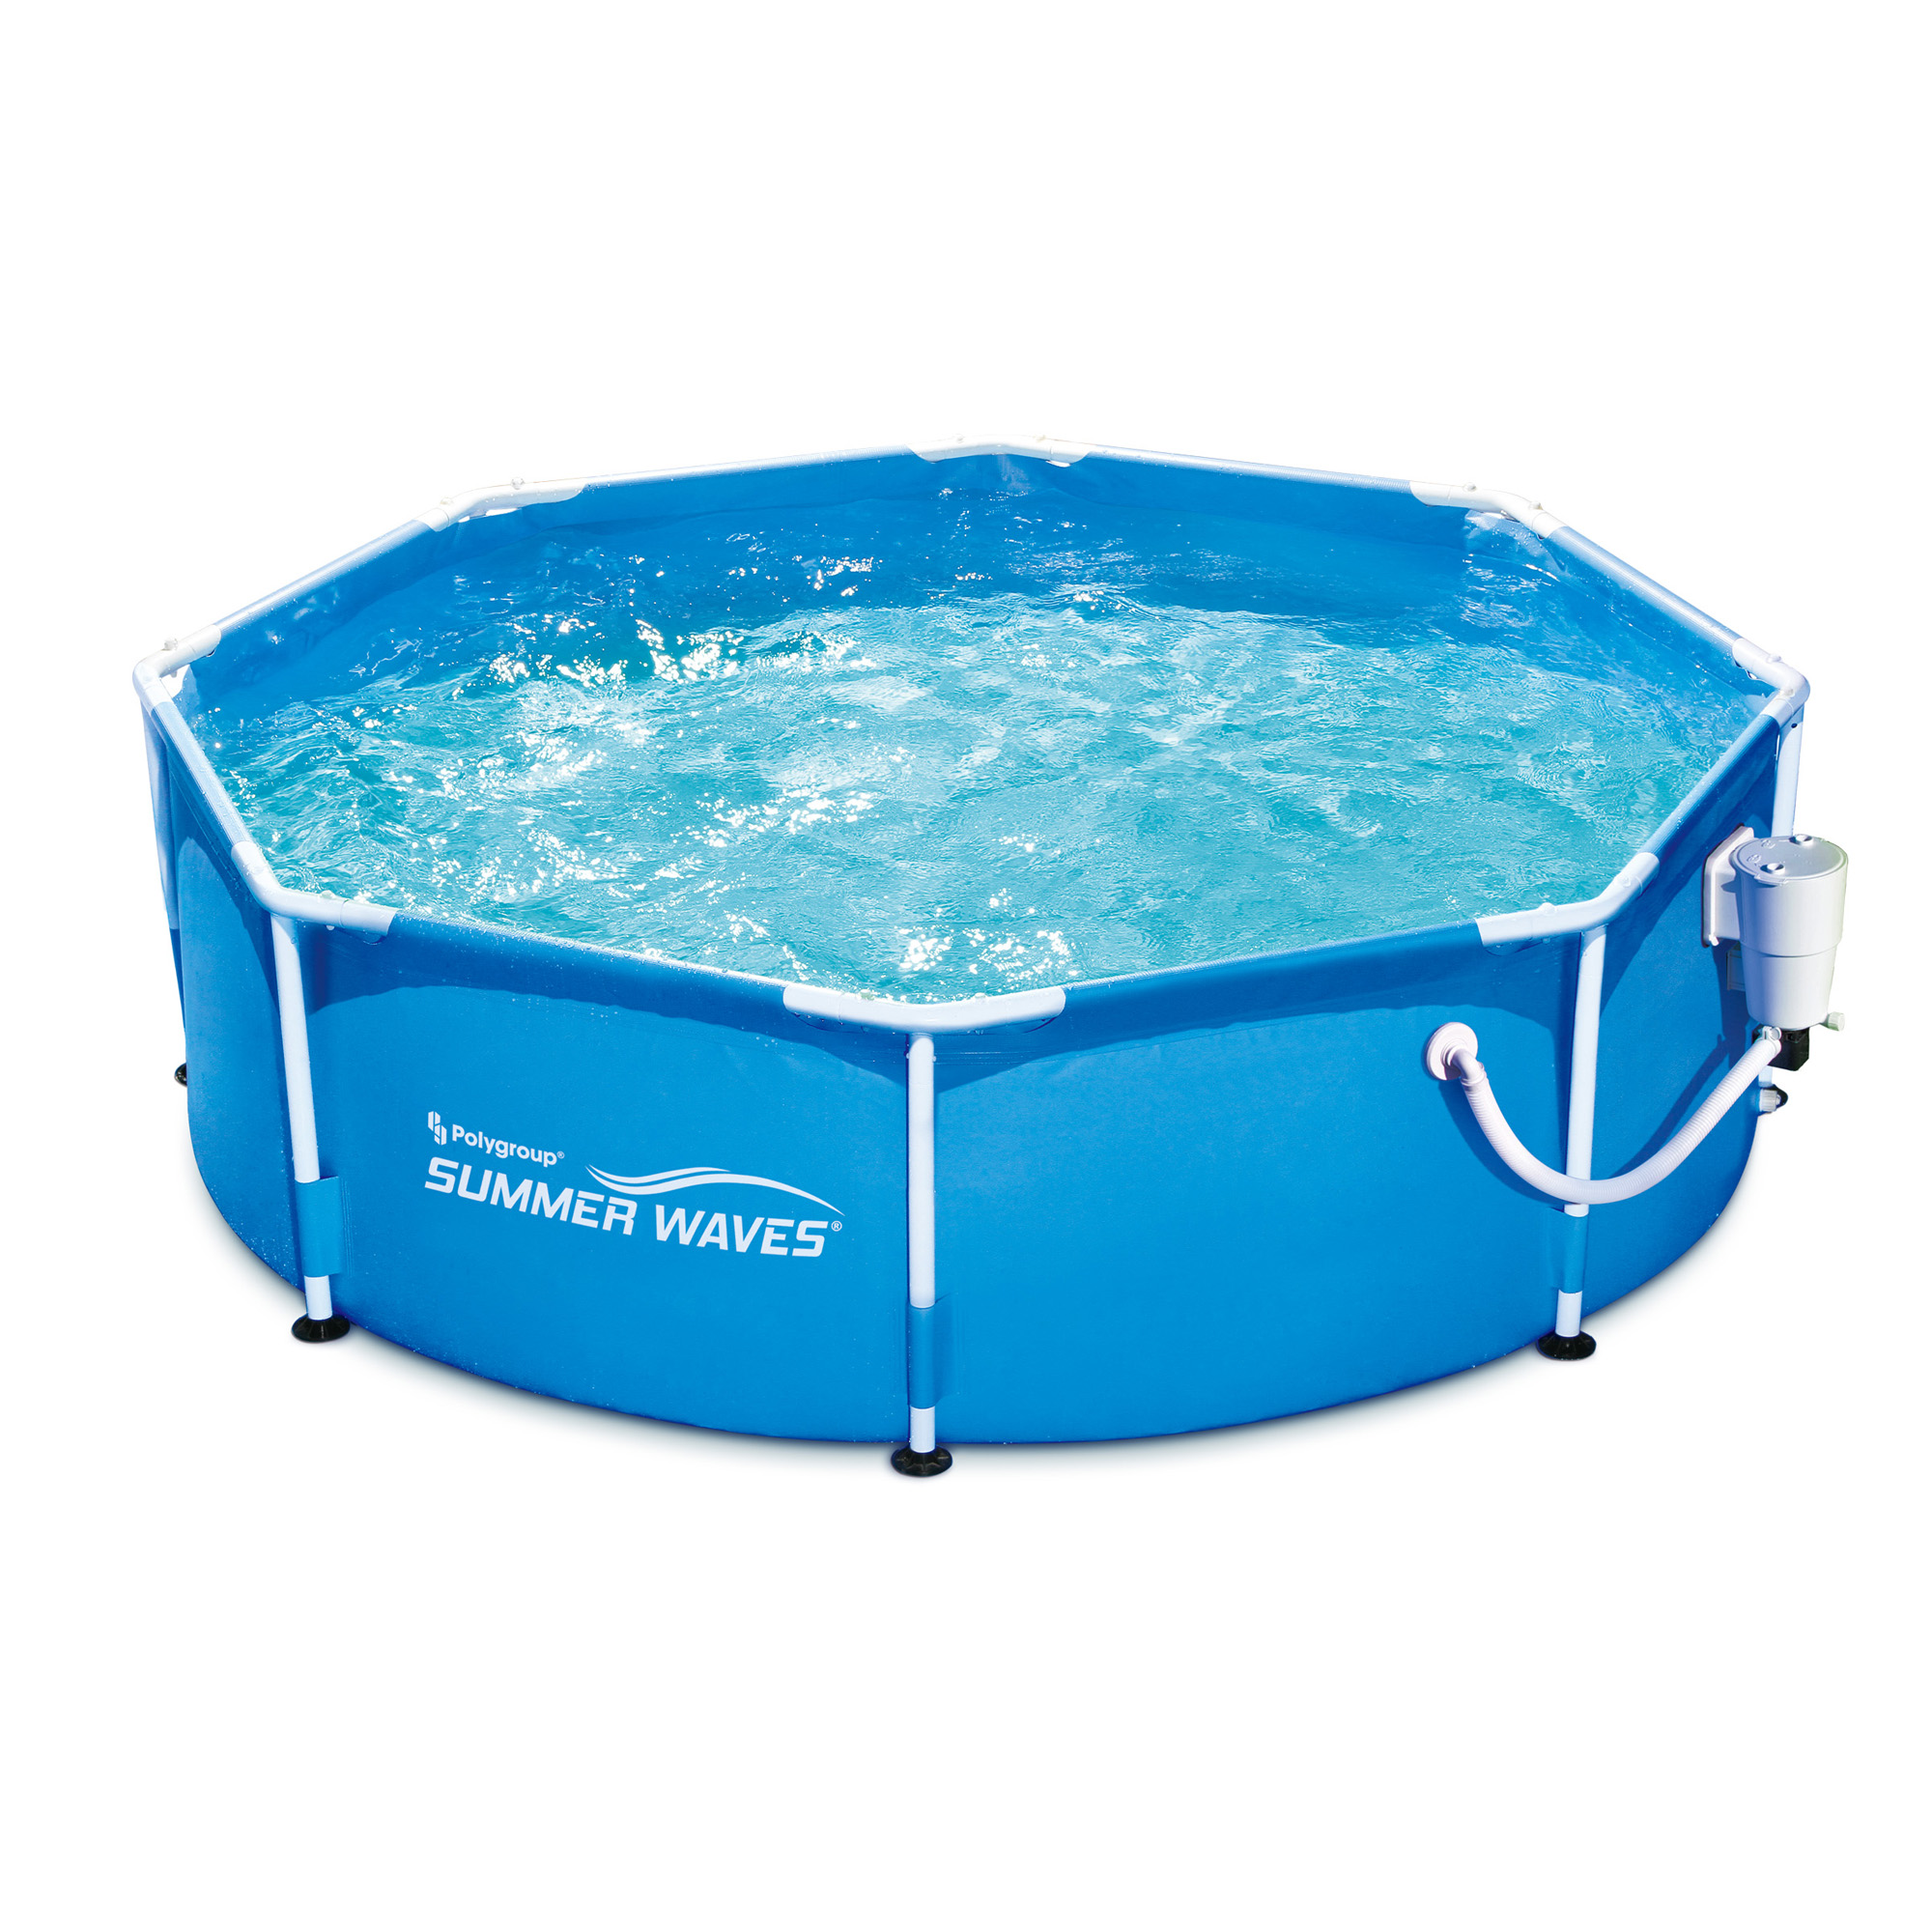 Summer waves 8 39 ft metal frame above ground pool with filter pump ebay - Steel frame pool ...